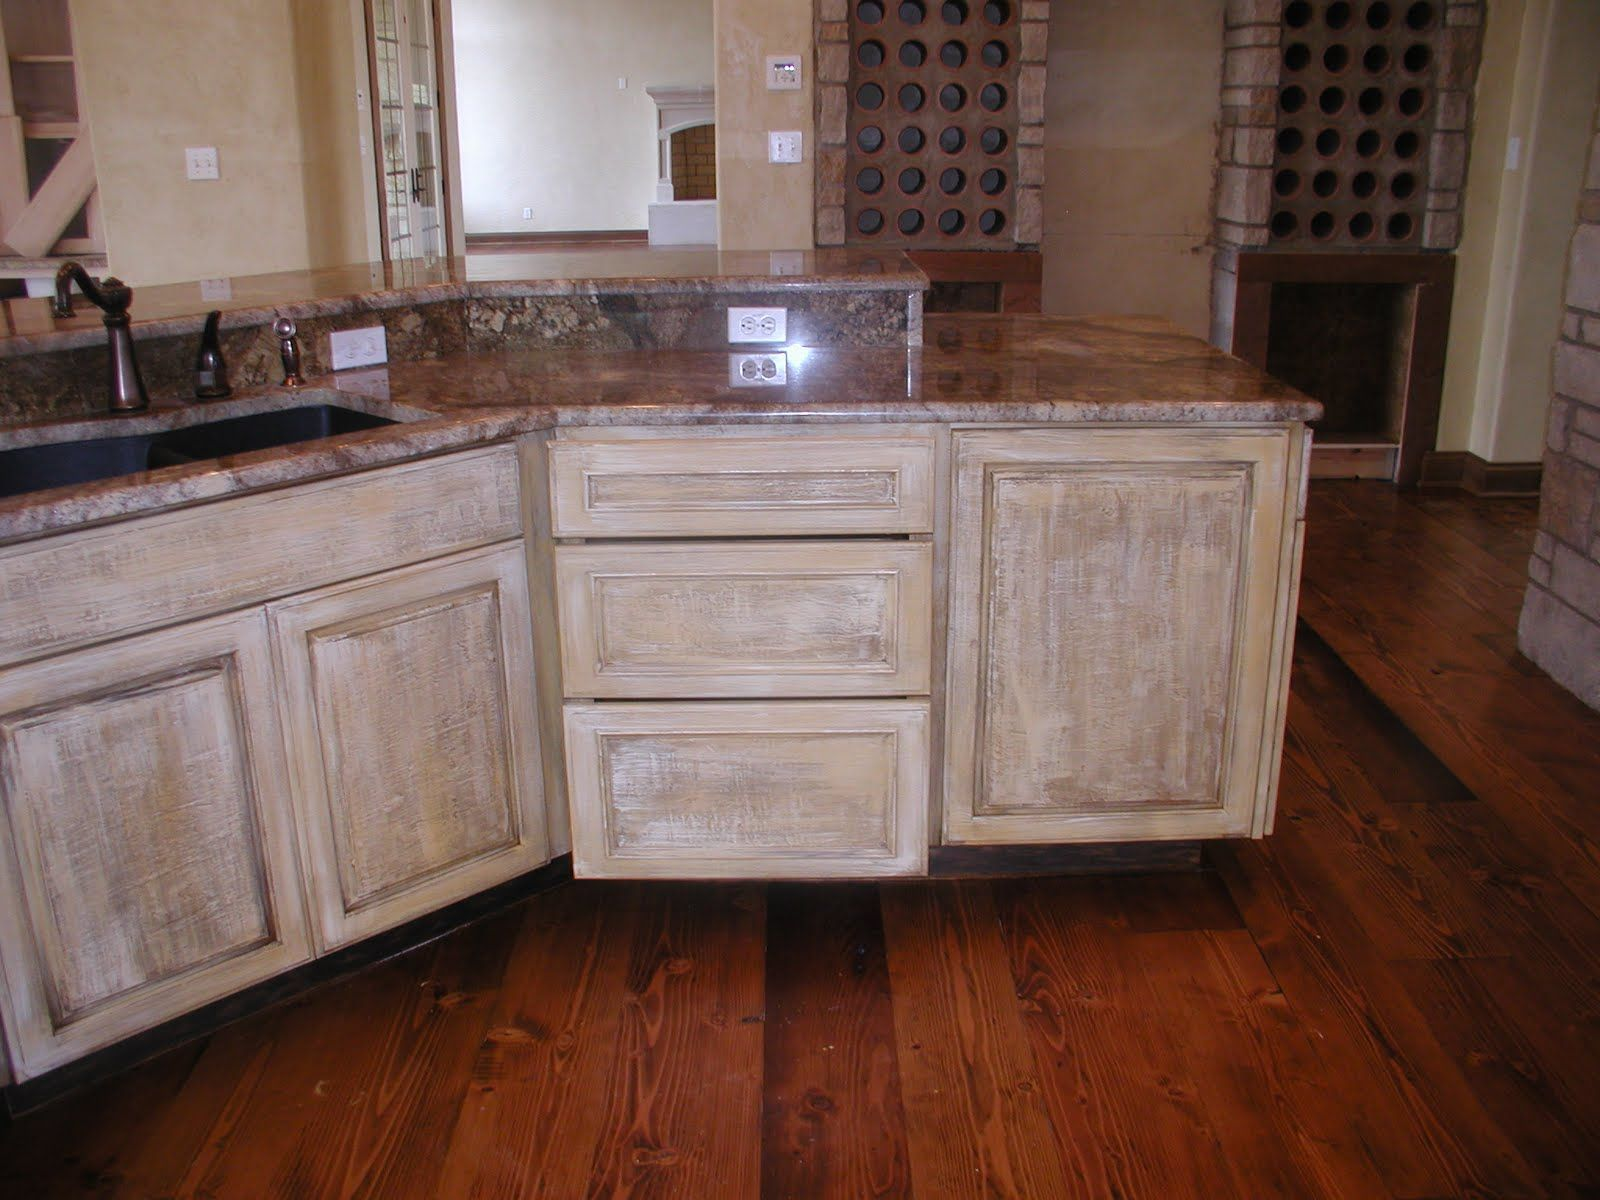 Distressed White Kitchen Cabinets Kitchen Cabinets White Distressed Painting Kitchen Cab Distressed Kitchen Cabinets Distressed Kitchen White Kitchen Rustic